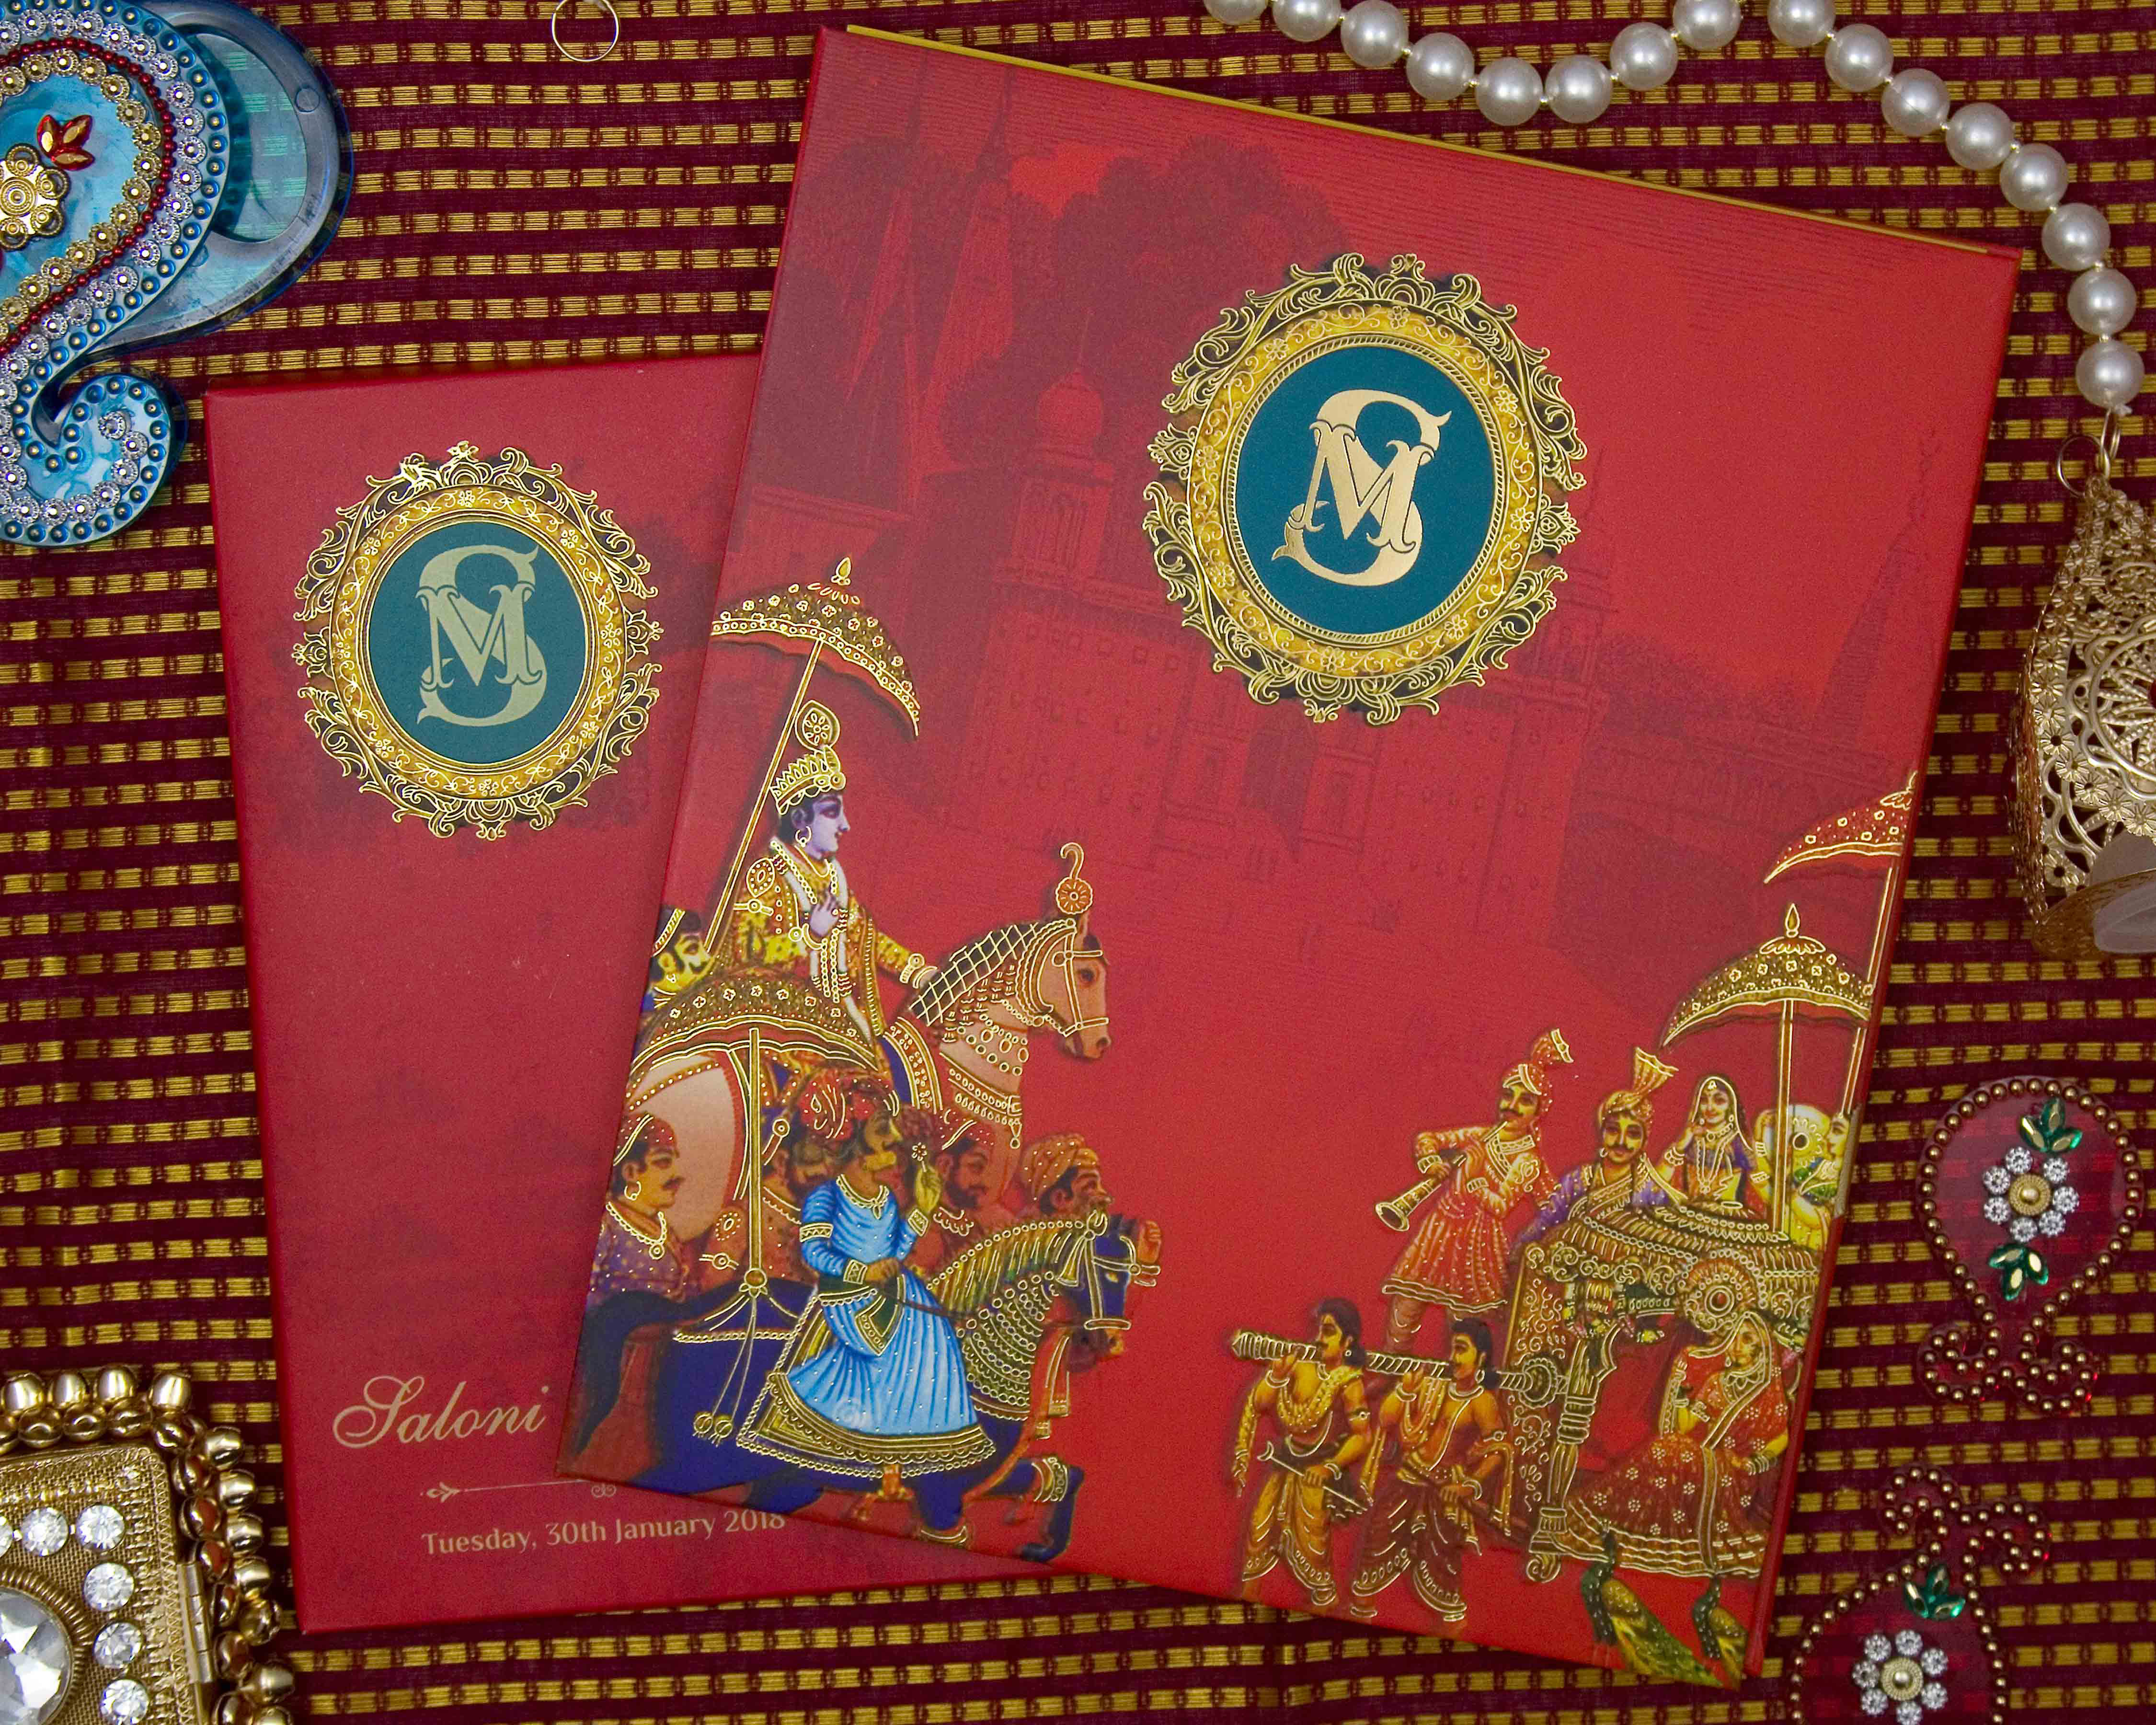 Royal themed Indian wedding invite in red